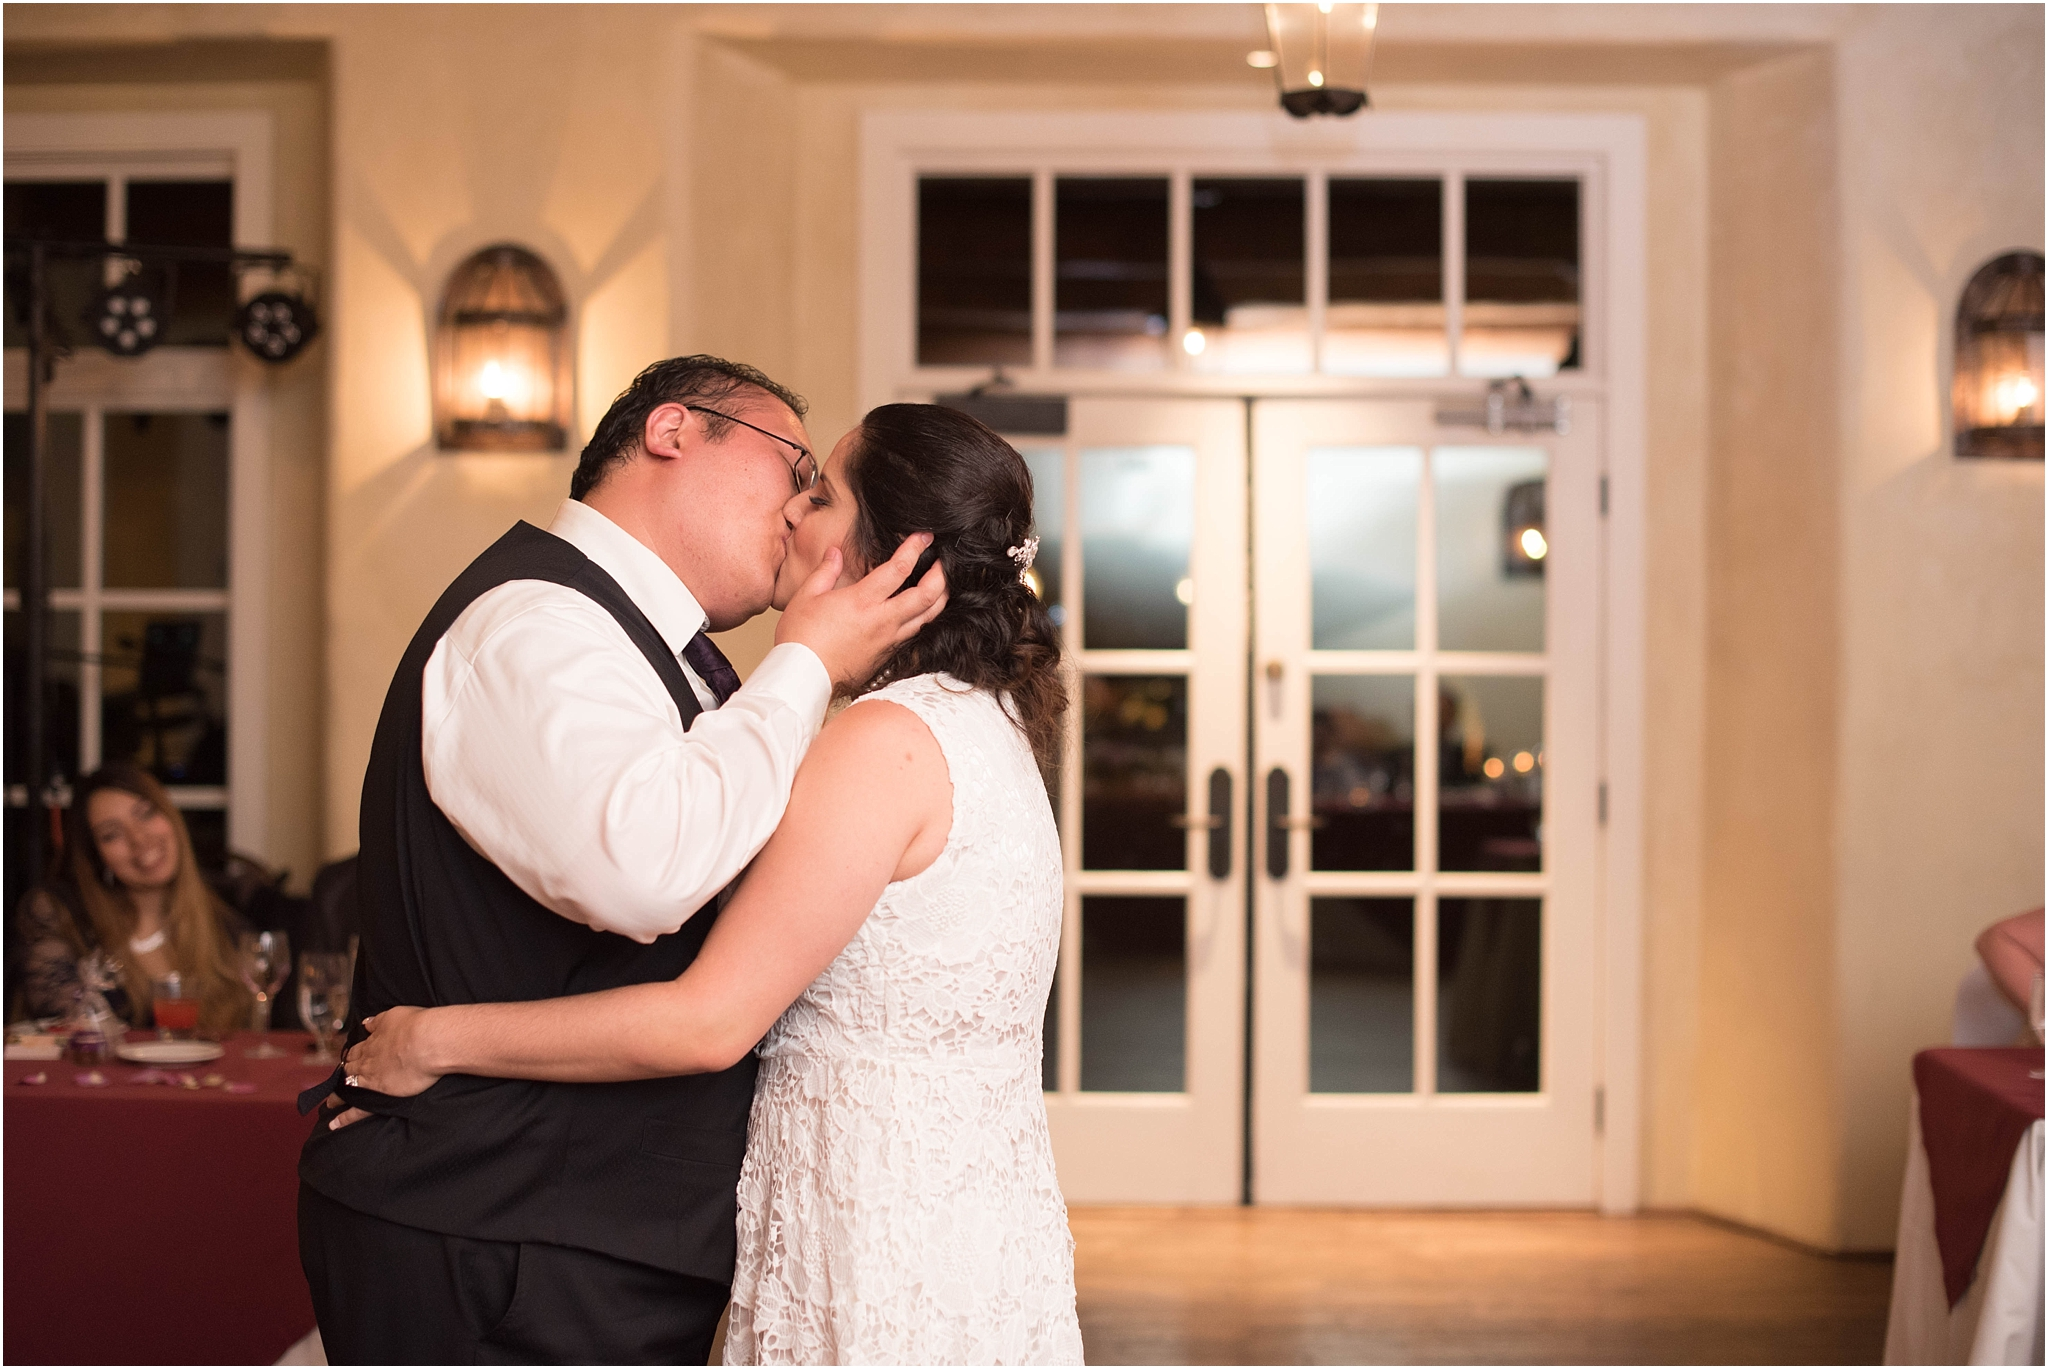 kayla kitts photography - new mexico wedding photographer - albuquerque botanic gardens - hotel albuquerque_0031.jpg